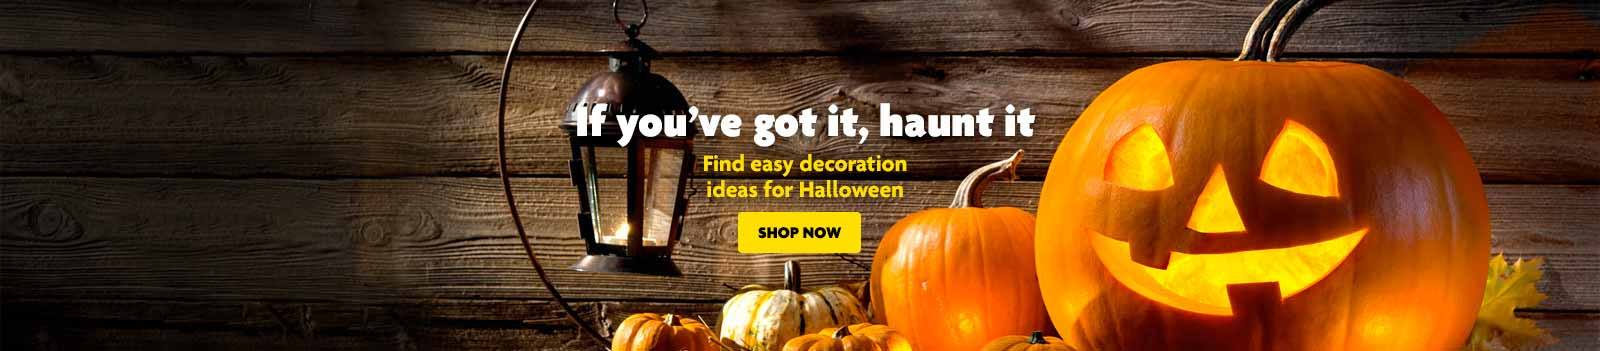 Halloween Decoration Ideas Banner